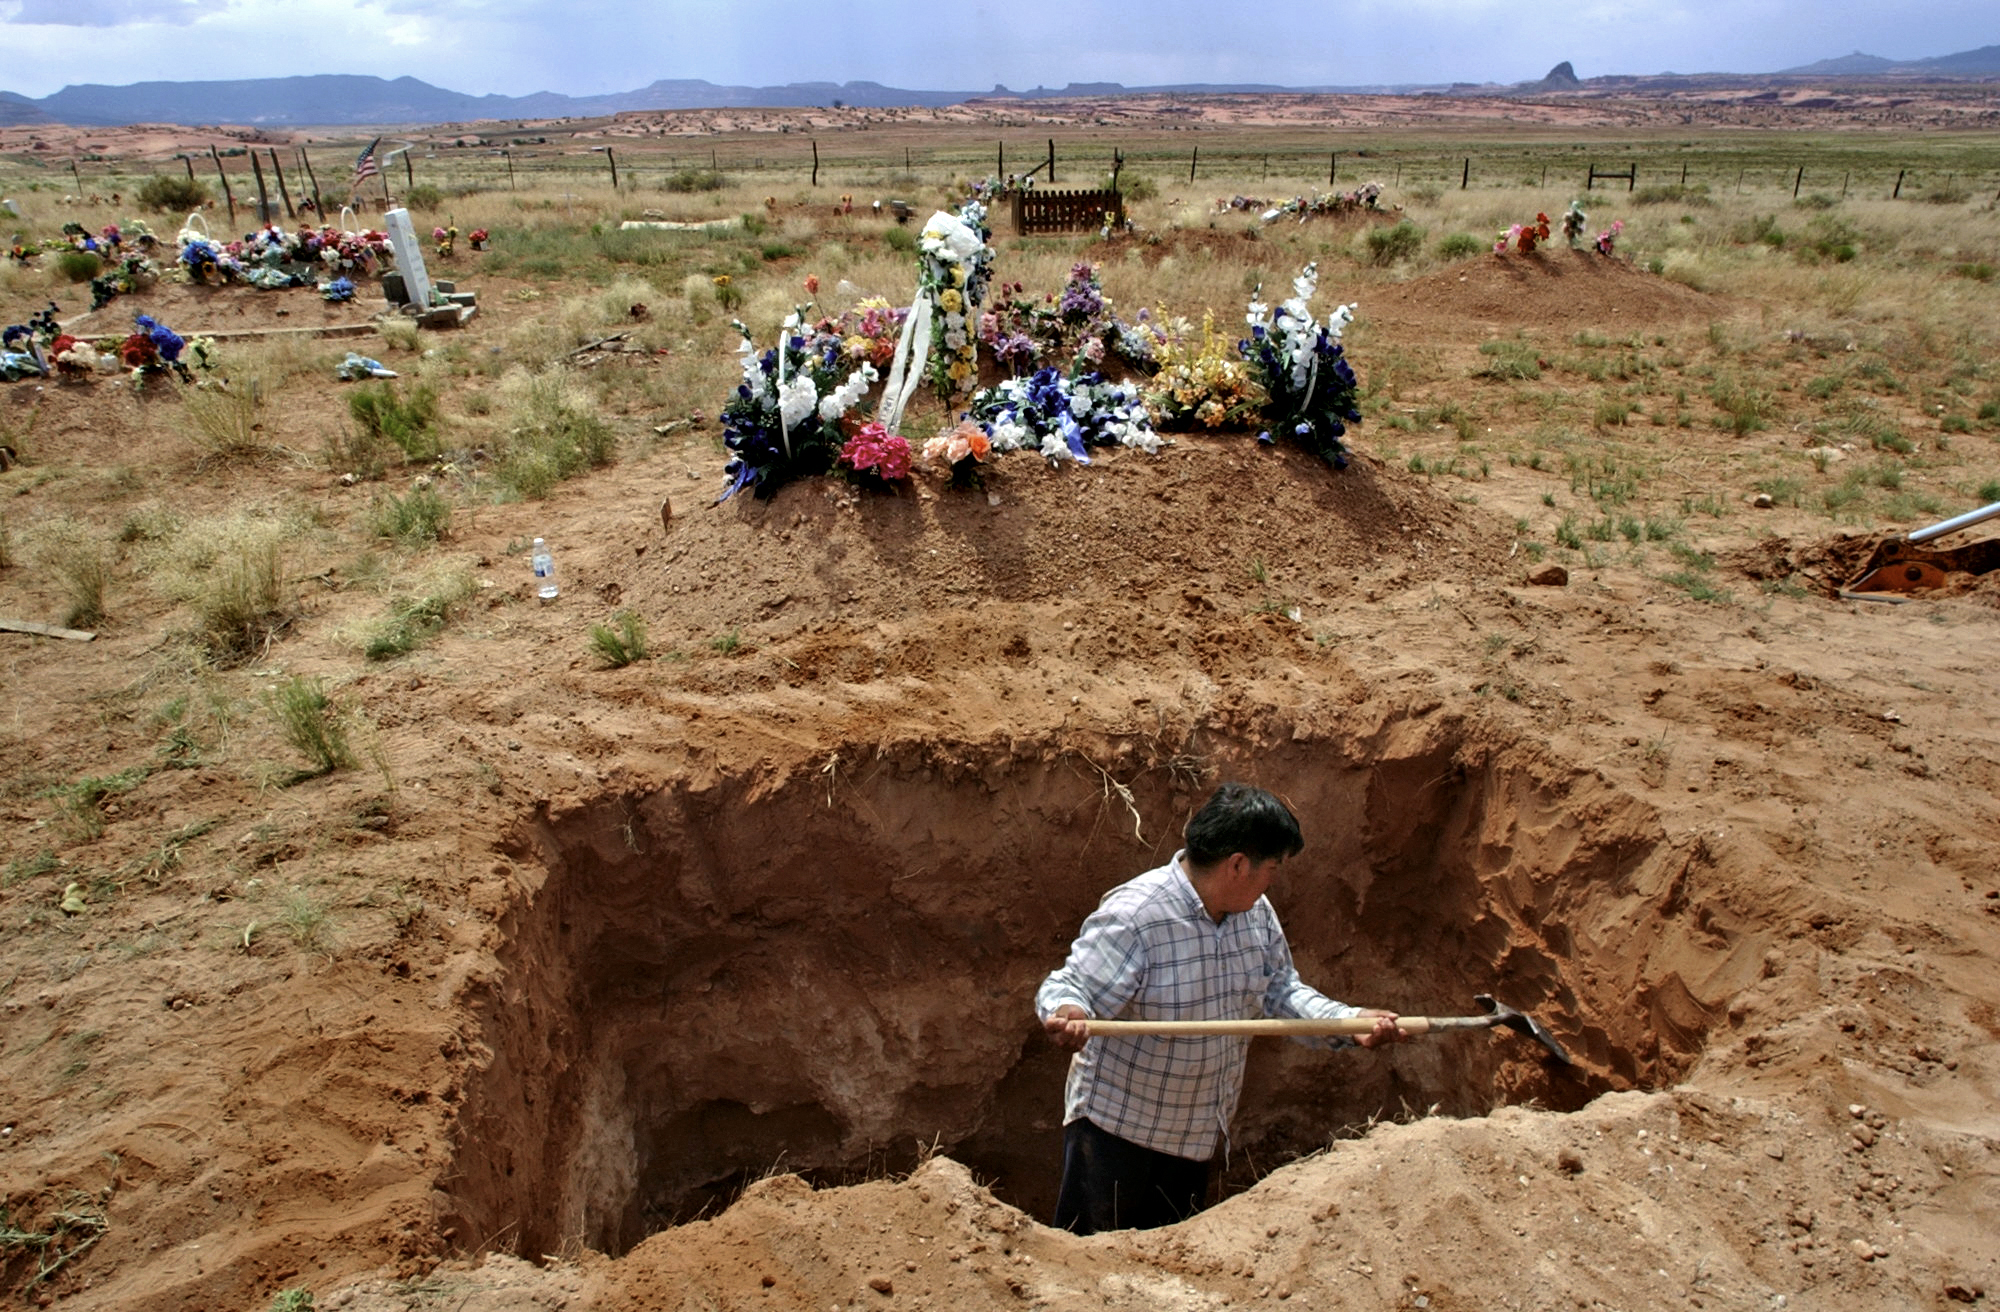 Albert Jackson digs a grave for his stepfather, Emerson Litson, a former miner in Red Valley who, like many other Navajo miners, died of lung disease. ©Gail Fisher Los Angeles Times